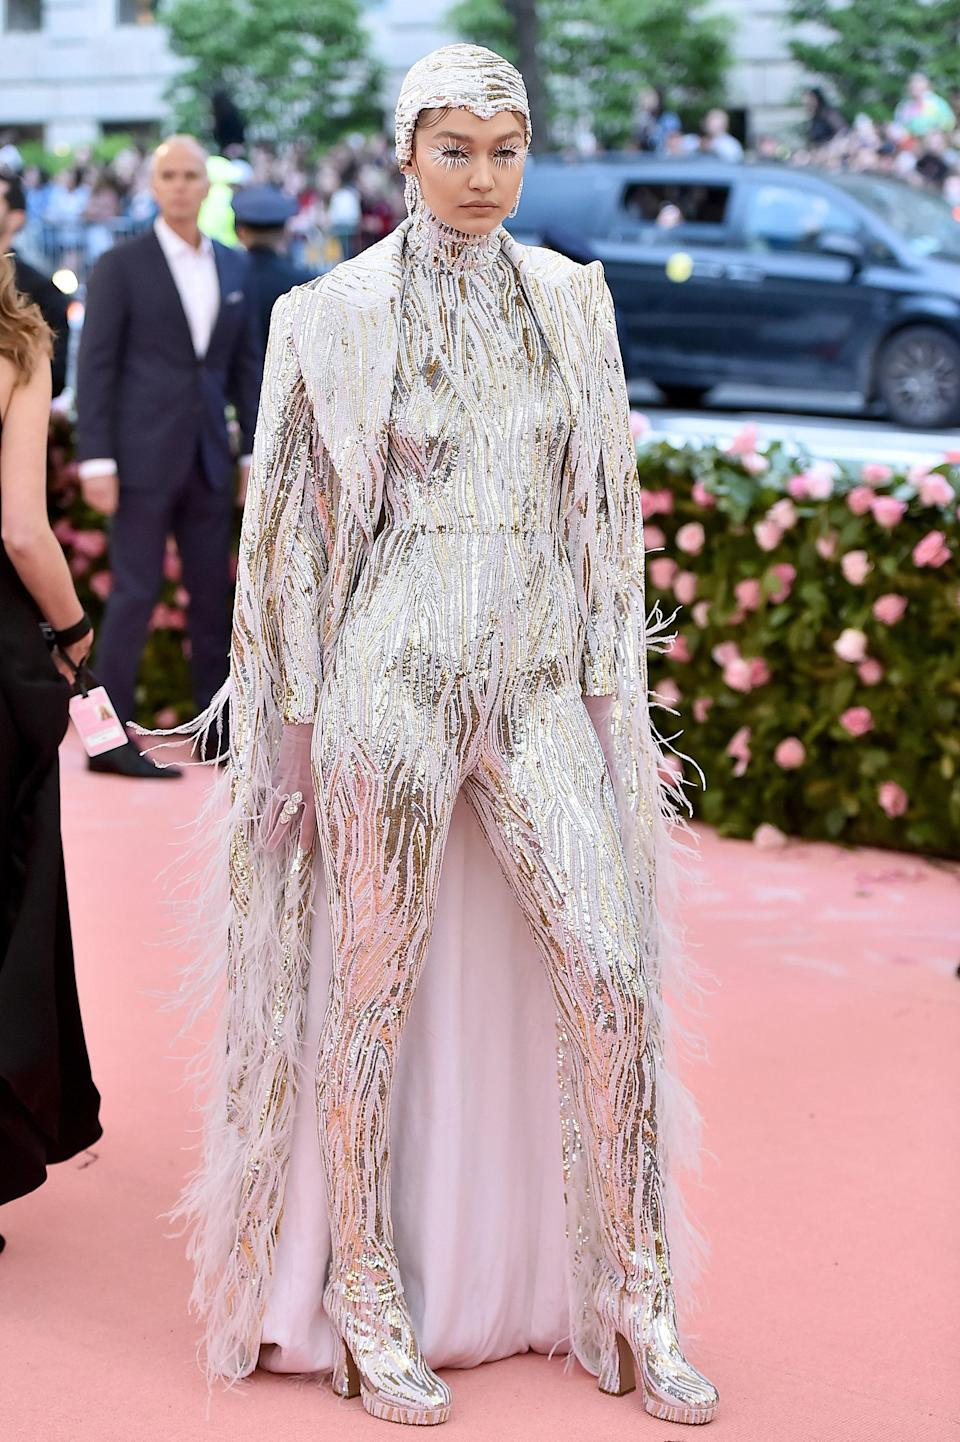 In head-to-toe Michael Kors, Gigi took the Camp theme of the Met Gala and ran with it, transforming herself into a literal bird of paradise-meets-Liberace mash-up. From her sequined skullcap to her feathered lashes, we give her a perfect 10 for nailing the theme.